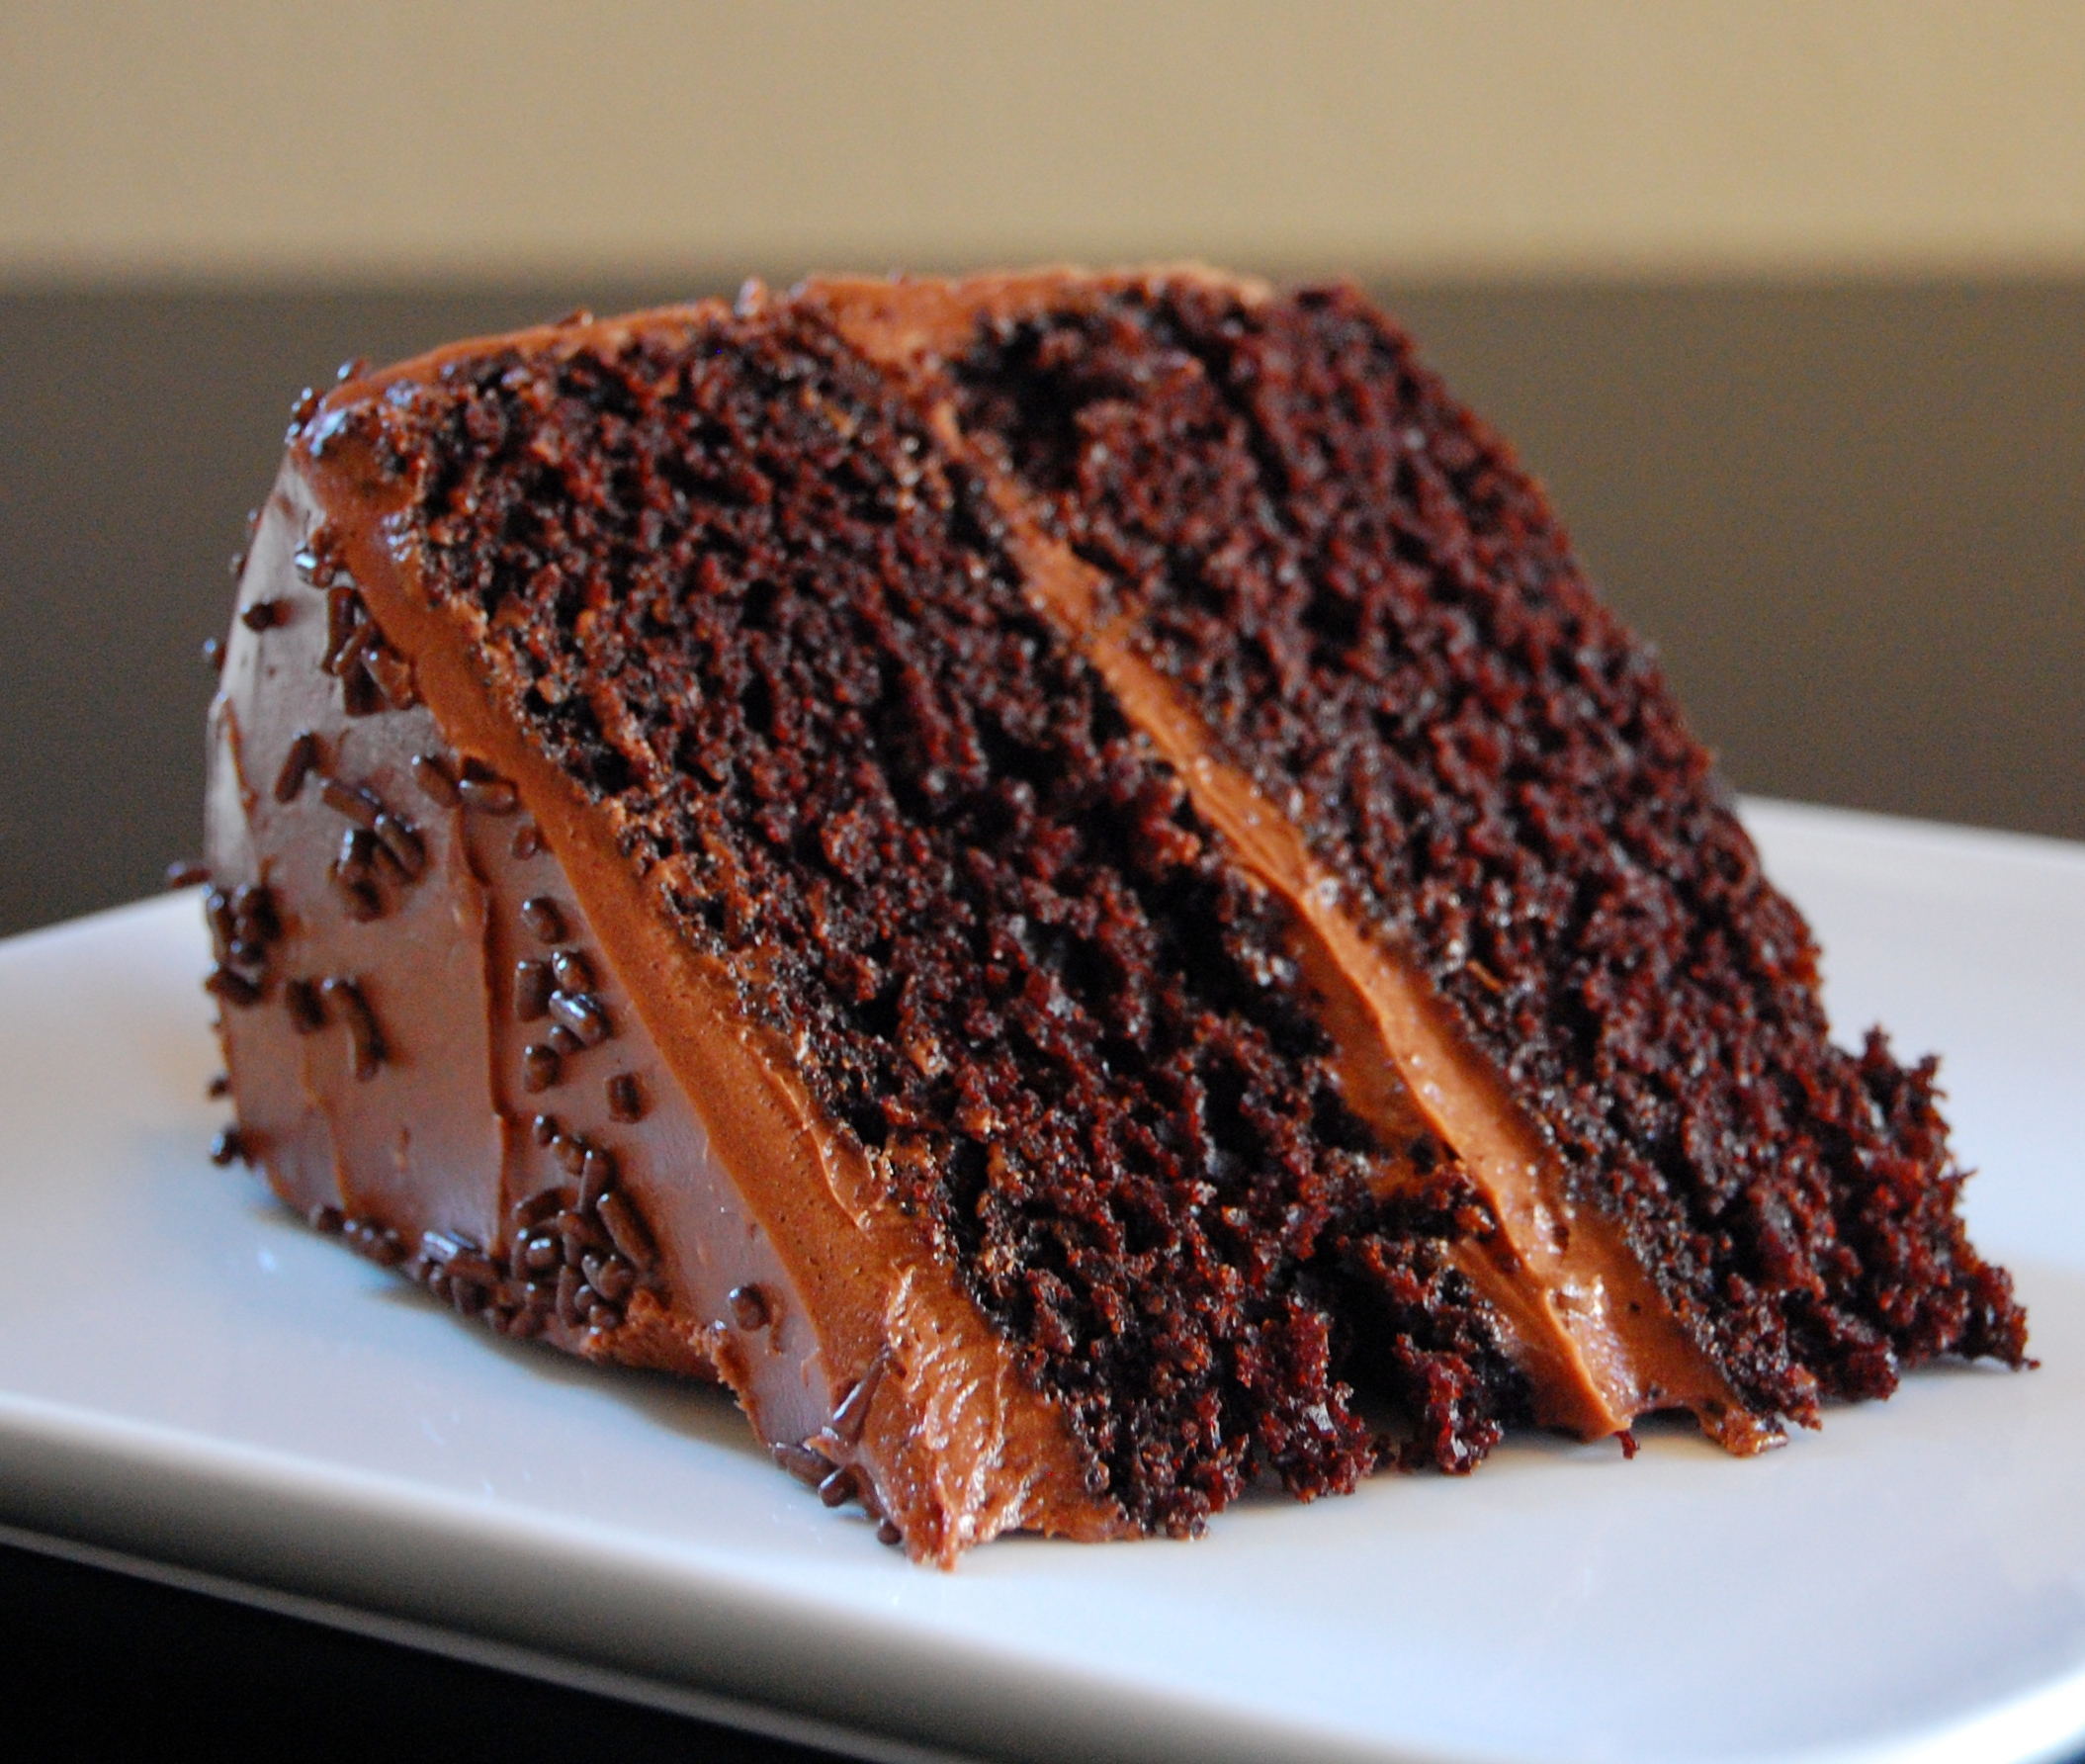 Images Of Chocolate Cake : chocolate barometer cake - how to test your new kitchen ...